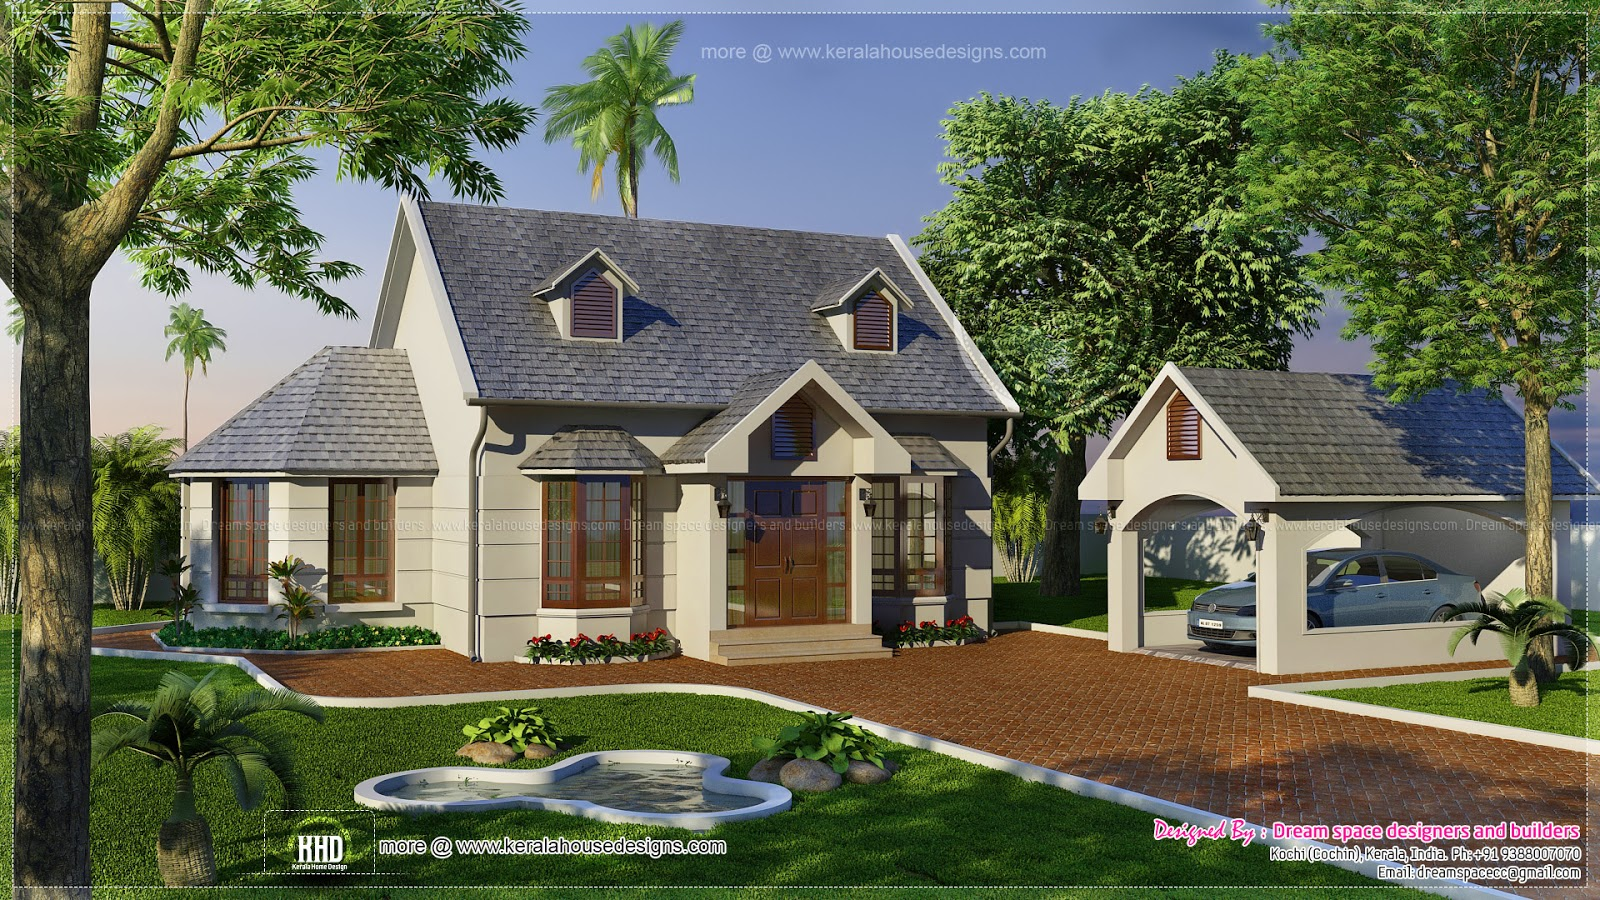 Vacation garden home design in 1200 home kerala for Landscape house plan